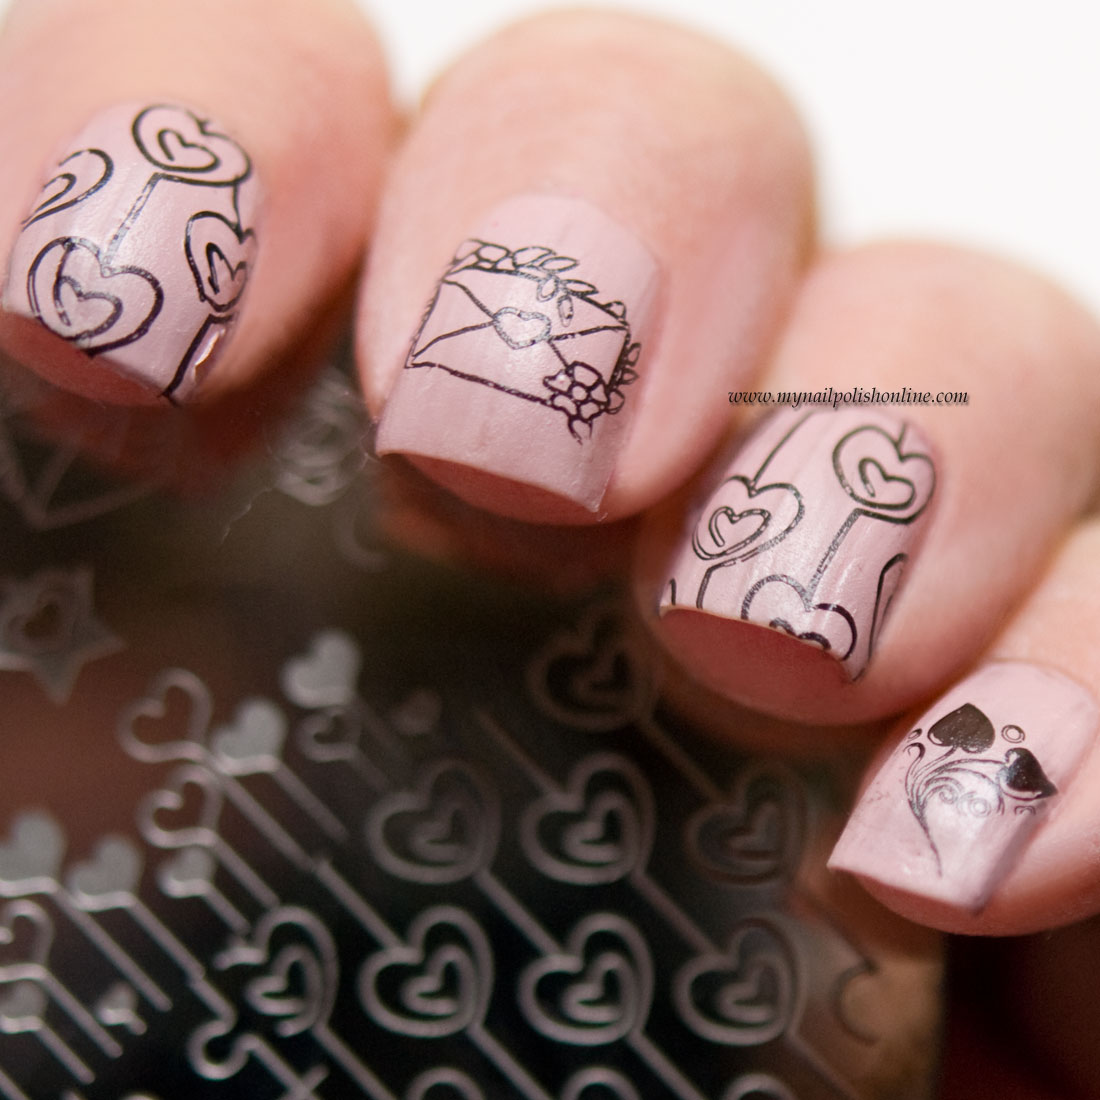 Stamping with Nicole Diary ND02